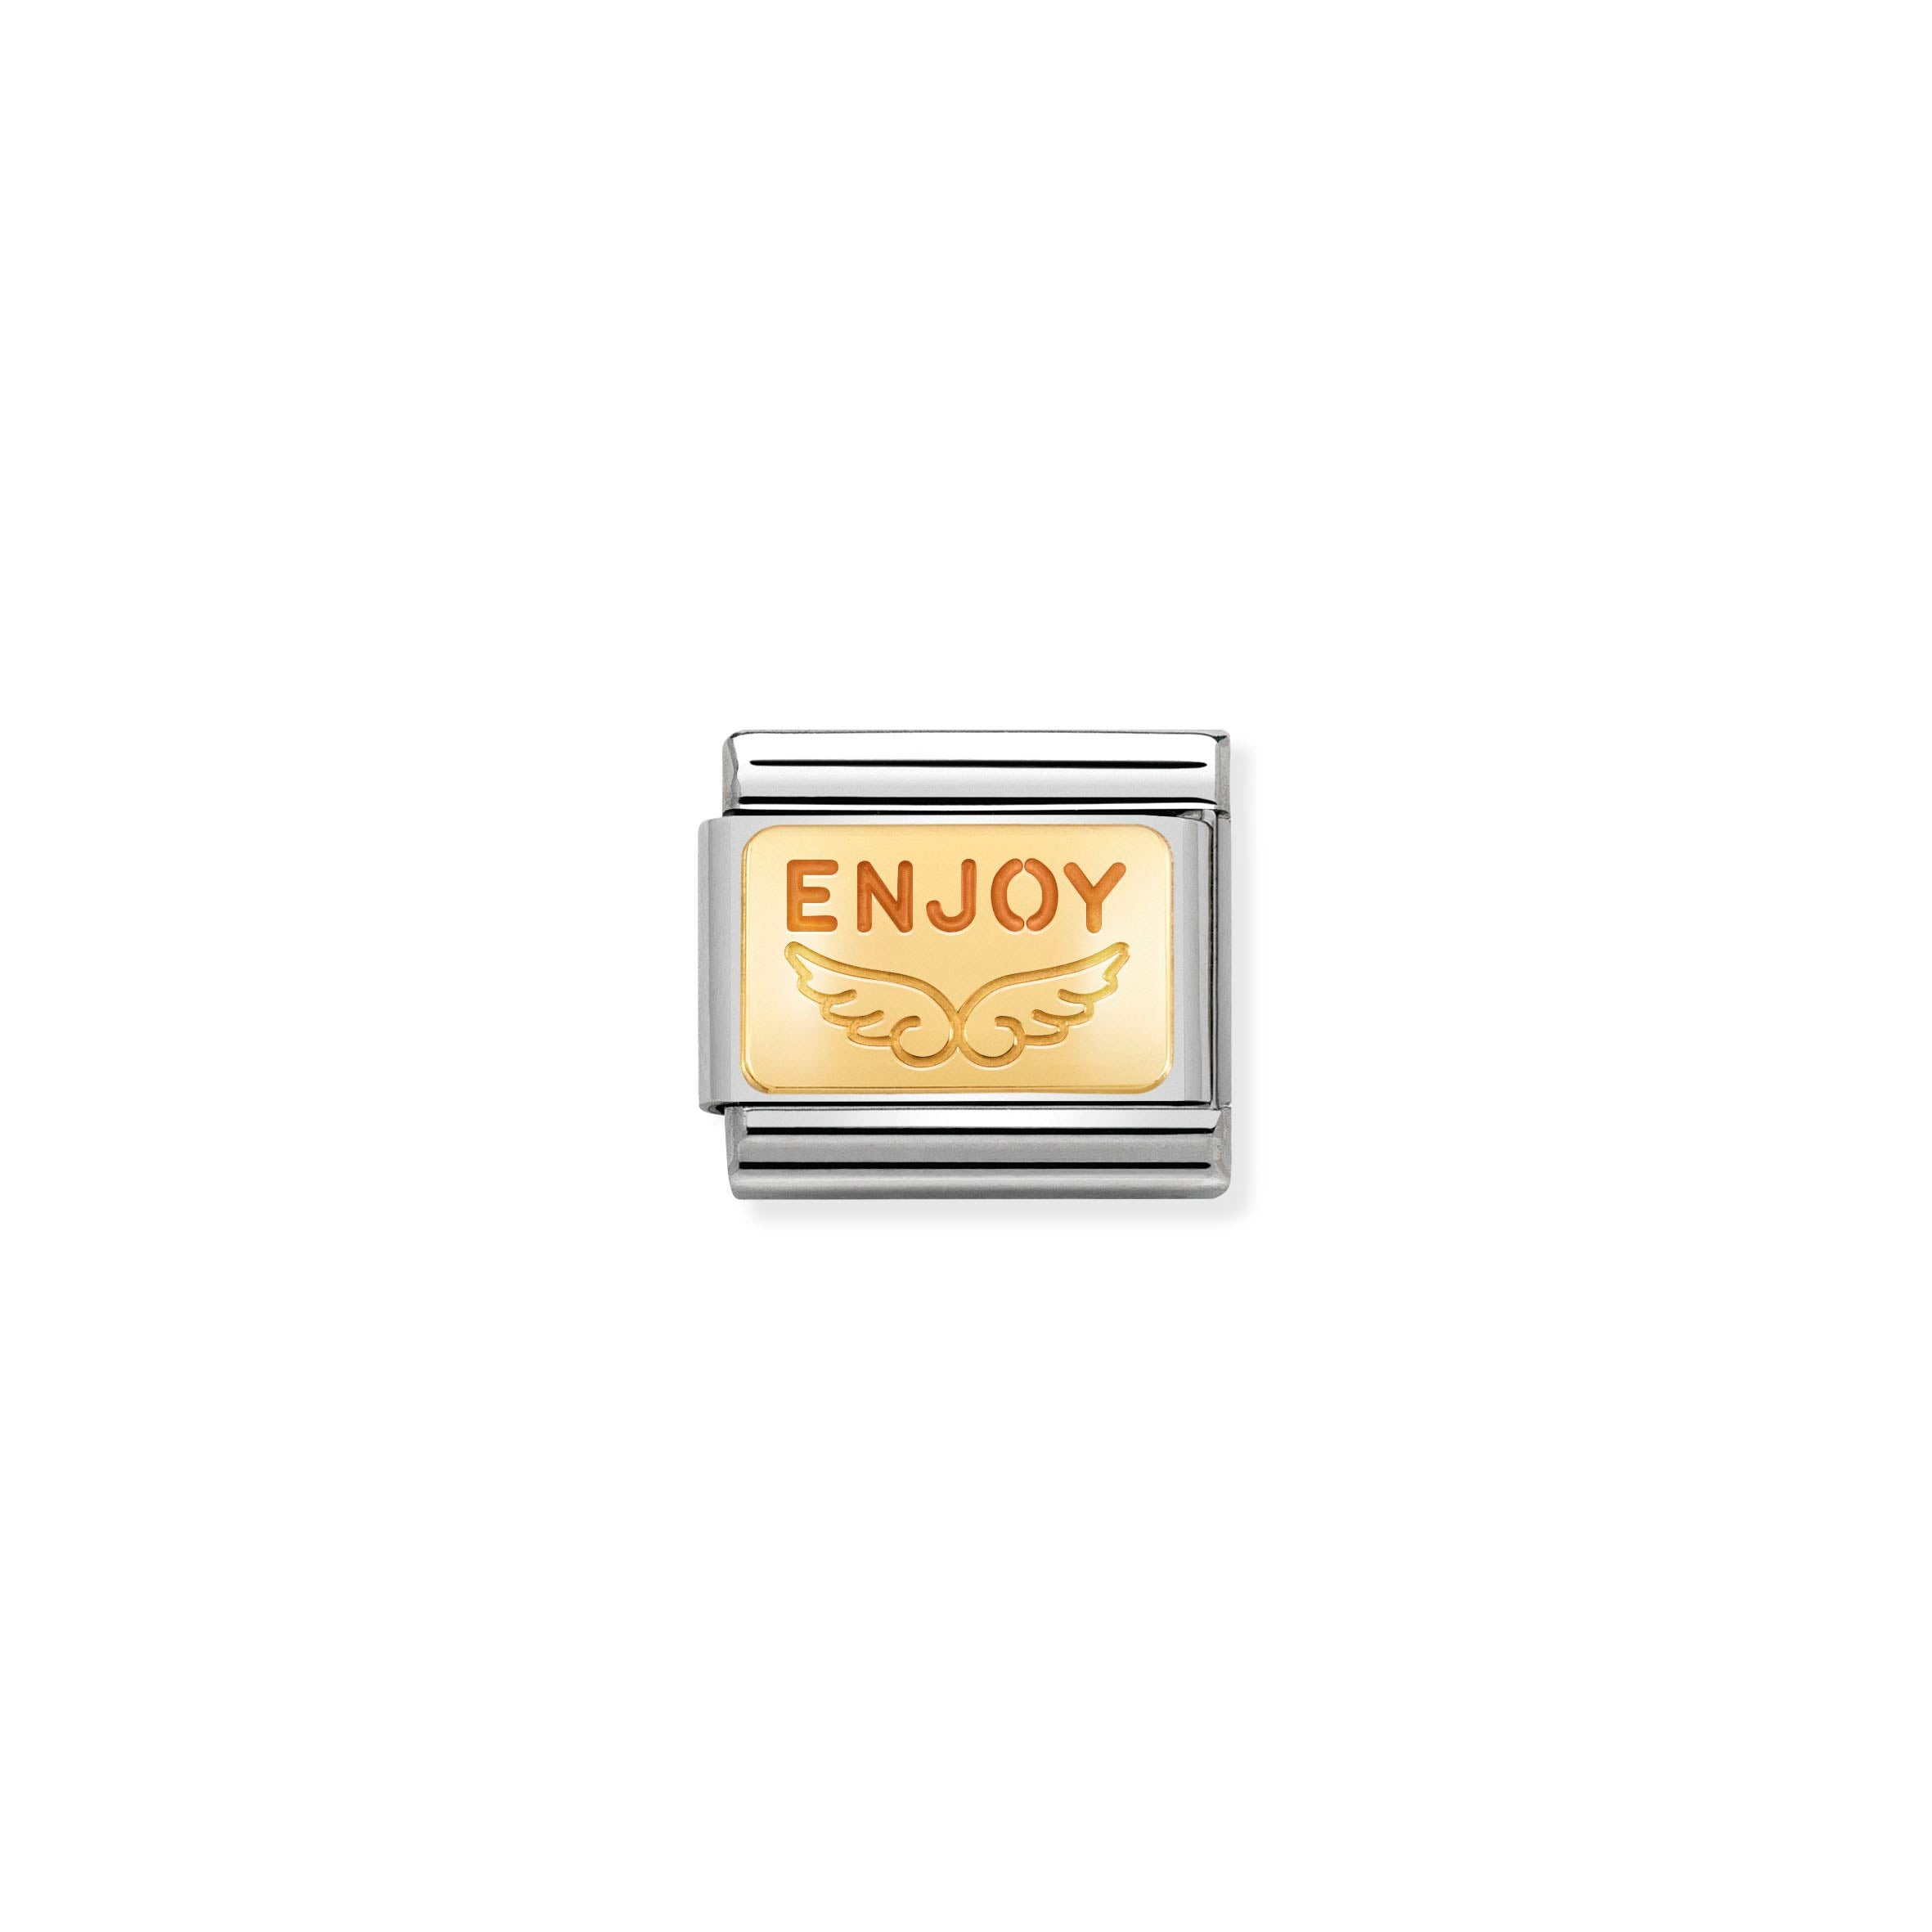 NOMINATION - Composable Classic PLATES st/steel, enamel & 18ct gold (Enjoy Life Angel)